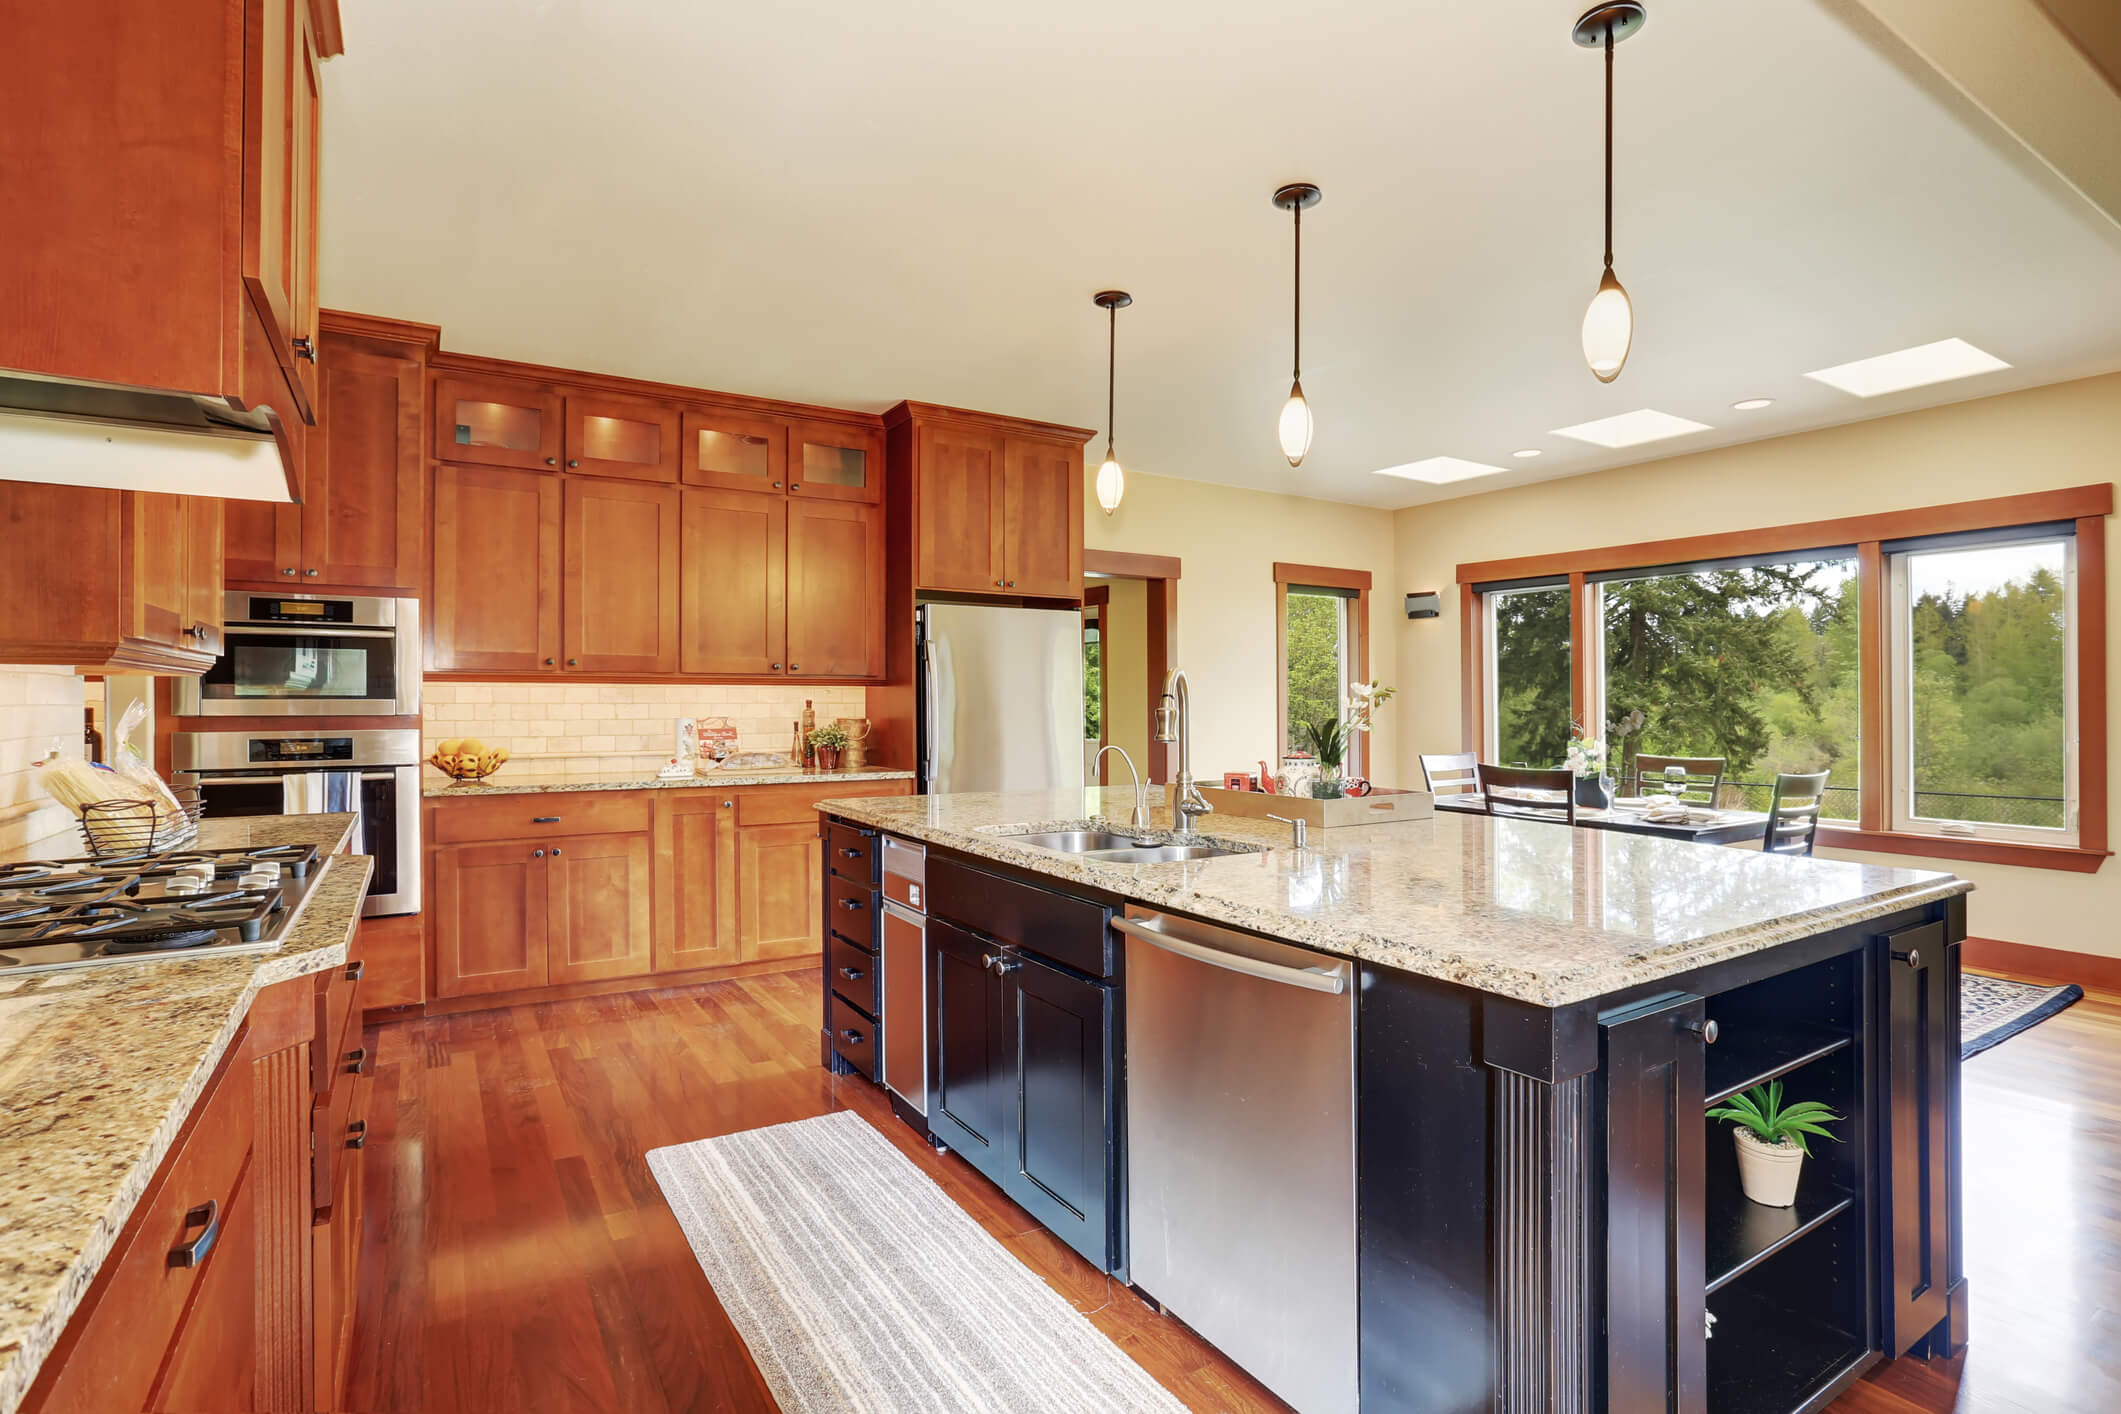 Kitchen area with open floor plan, view of dining room.